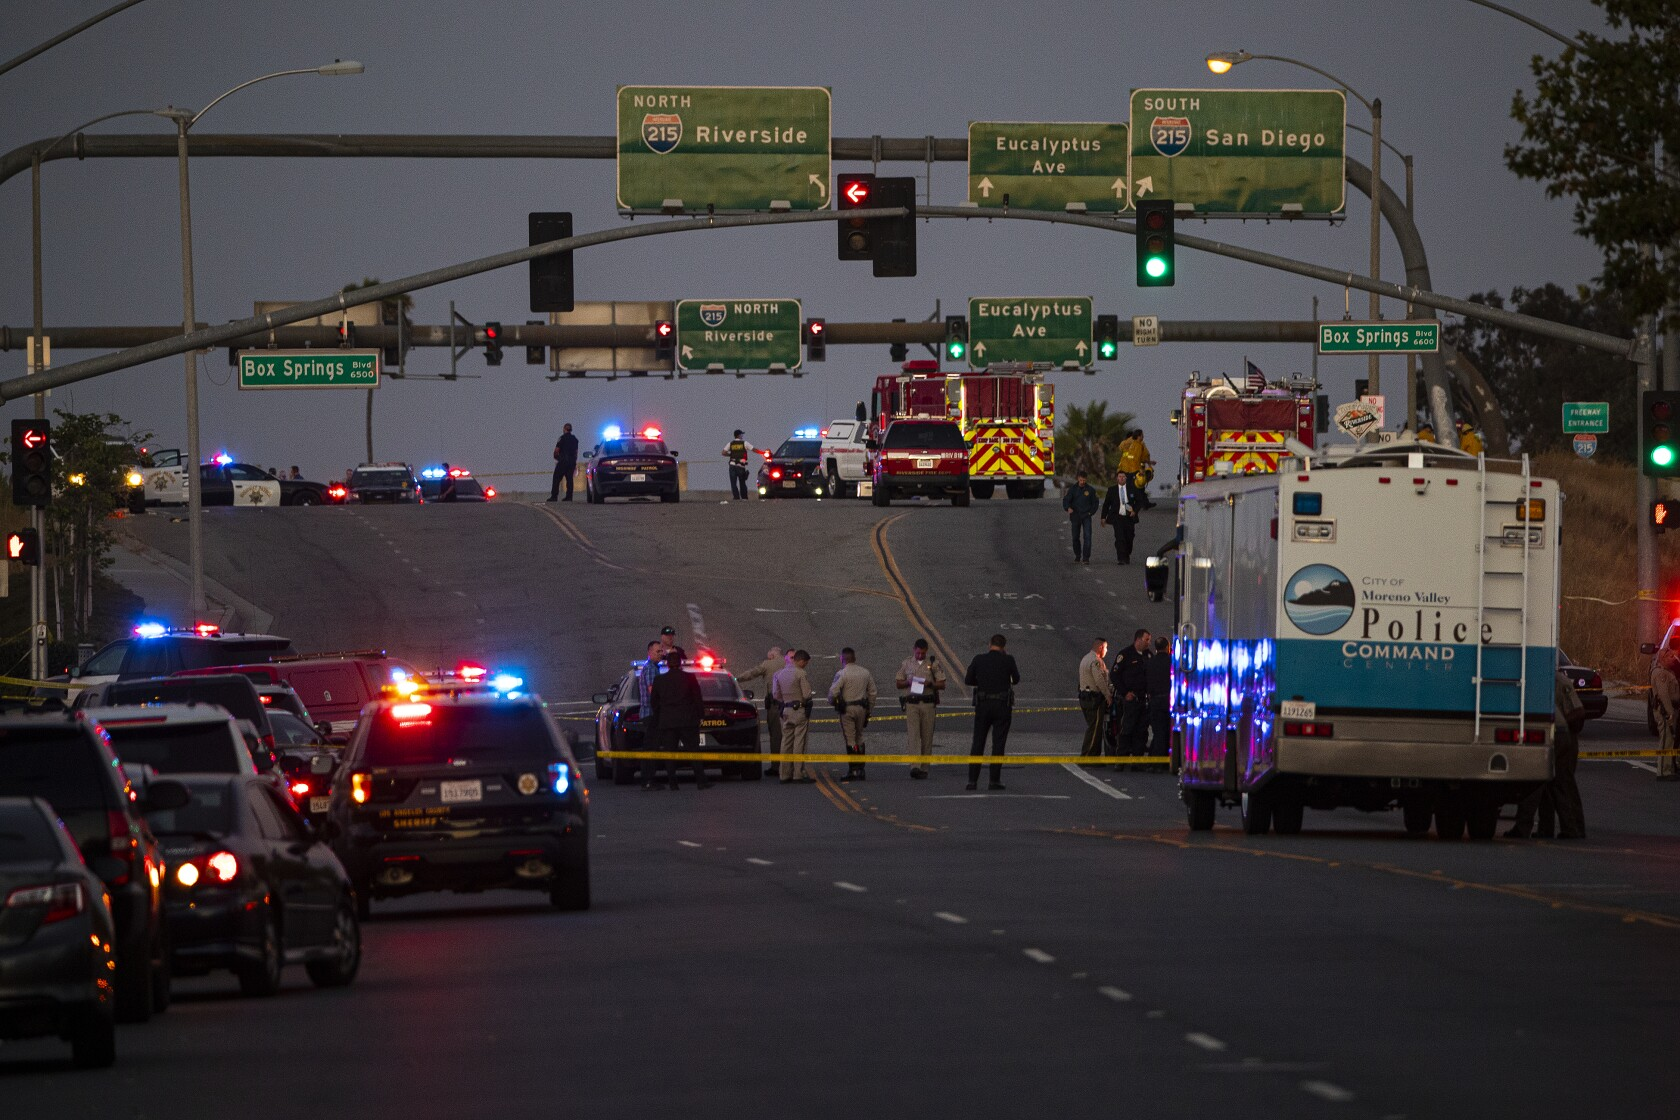 Riverside shooting: CHP officer and gunman killed near 215